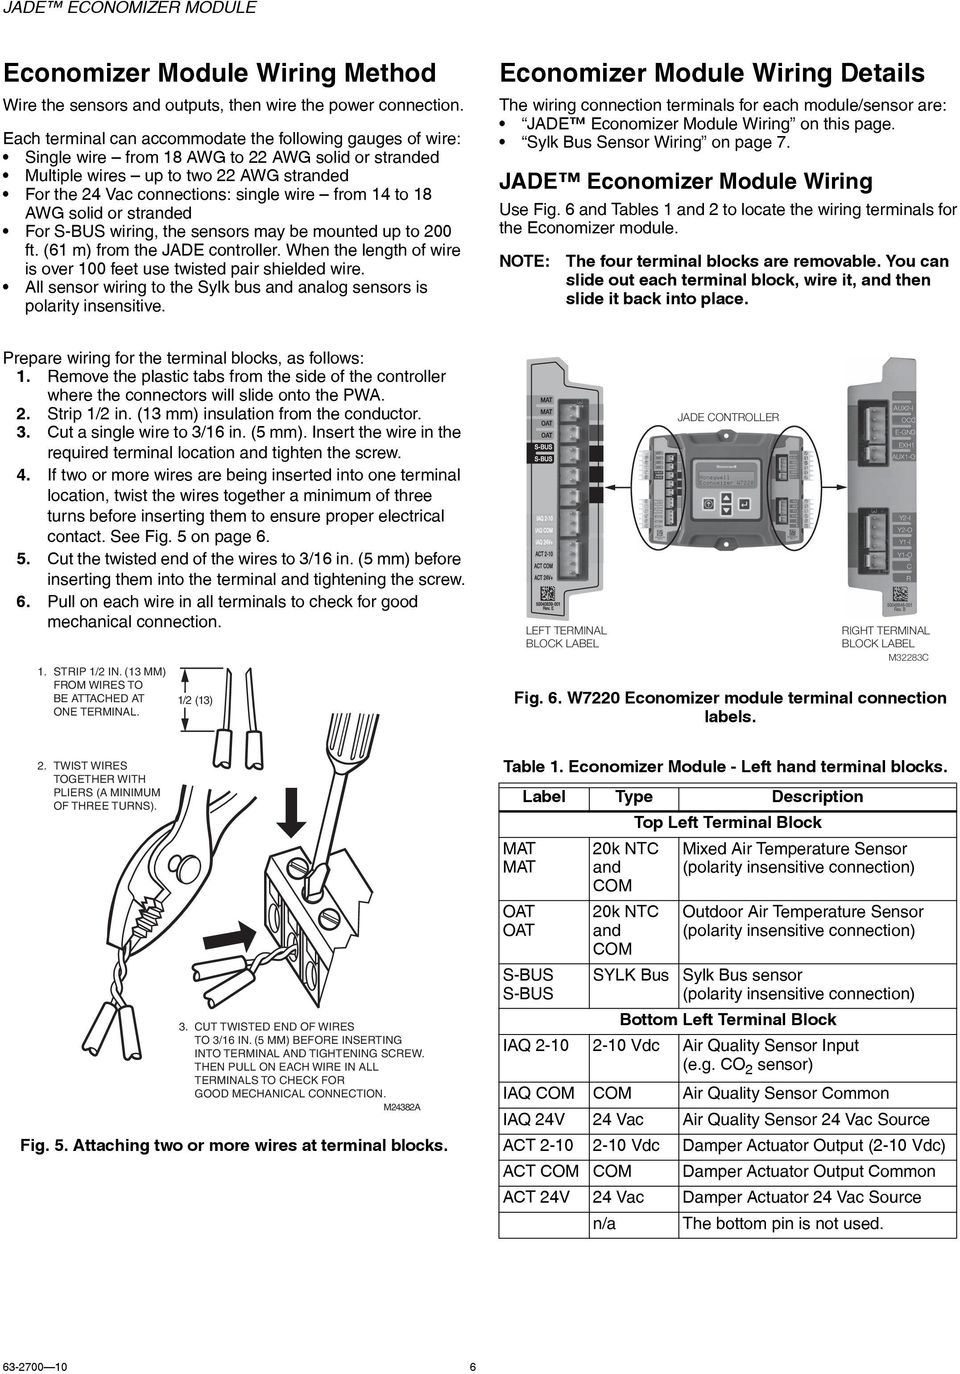 Jade Economizer Module Model W7220 Pdf Honeywell Wiring Diagram Awg Solid Or Stranded For S Bus The Sensors May Be Mounted Up